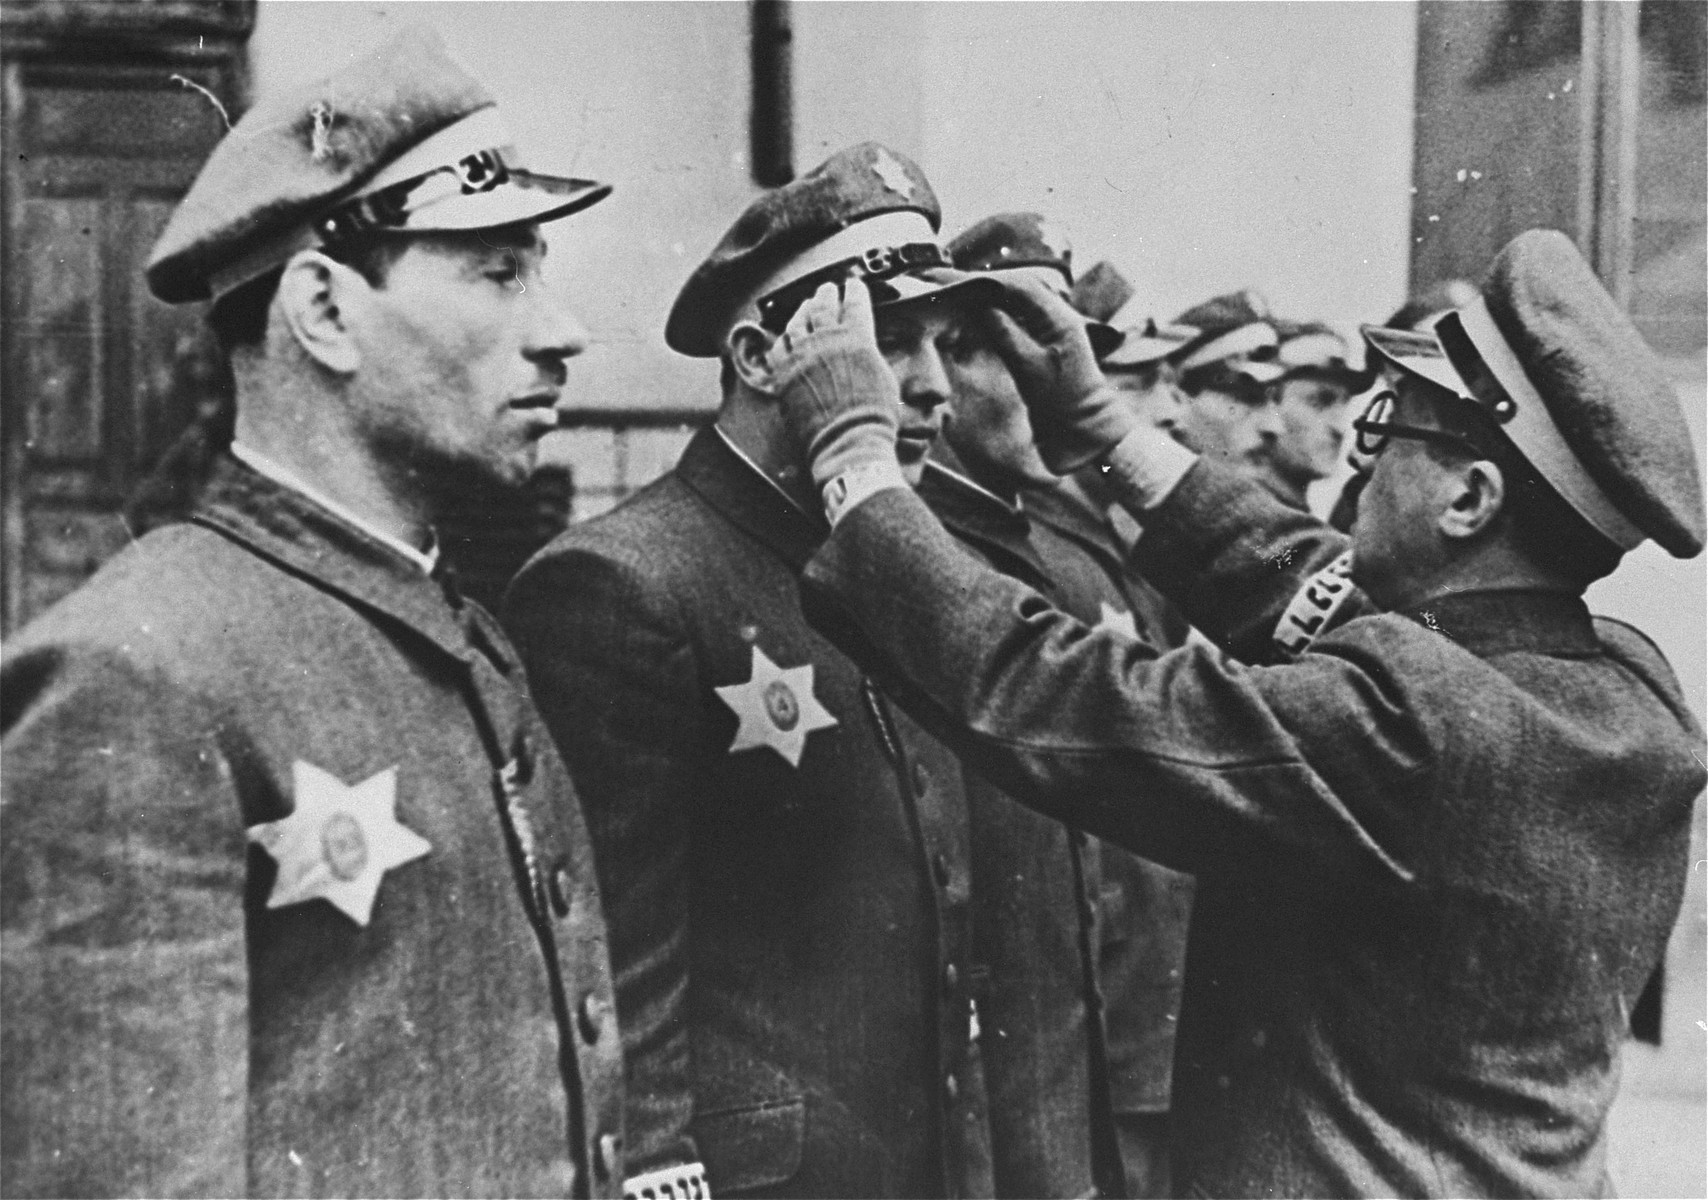 "Symche Spira, the senior officer of the Krakow ghetto police (Ordnungsdienst) straightens the cap of one of his men during roll call.    Members of the Ordnungsdienst in Krakow wore unique identifying marks as part of their uniform.  These included armbands on which ""Ordnungsdienst"" was written in Hebrew and badges in the shape of the Star of David surrounding an oval that gave the officer's number.  OD officers assisted in the deportation of Jews from the Krakow ghetto, among other tasks, and the last of its members were themselves deported to the Plaszow labor camp when the ghetto was finally liquidated in March 1943.  Spira who was later replaced by Wilek Chilowicz ."